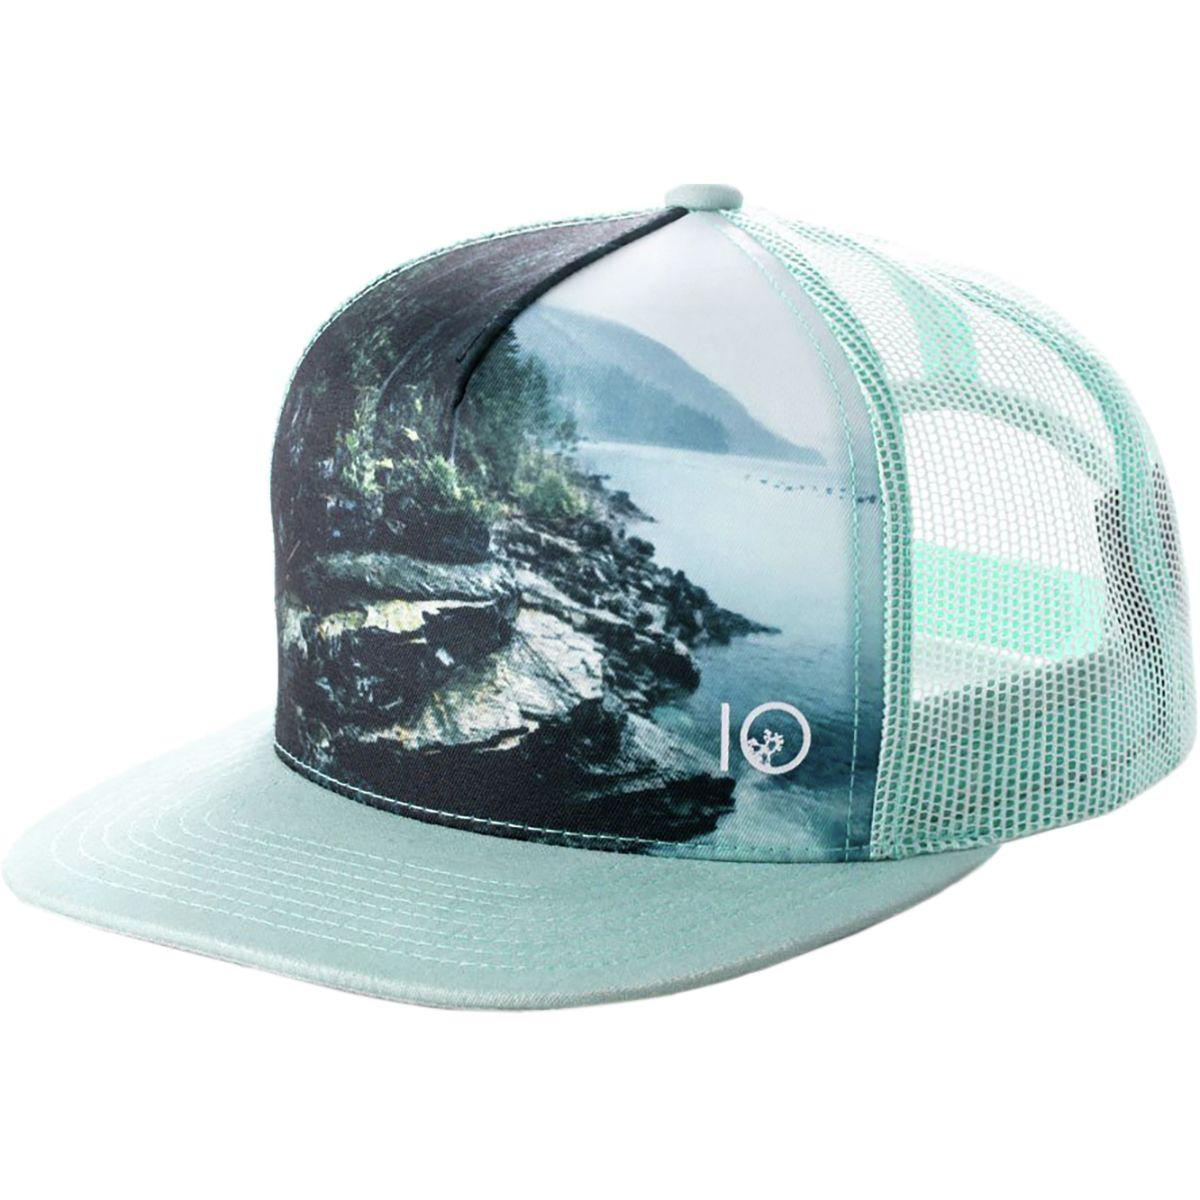 huge selection of fd6eb 90db0 ... cap 20853436 2018 a8151 3af3a  italy lyst tentree outlook trucker hat  in blue for men a9c4b 4a495